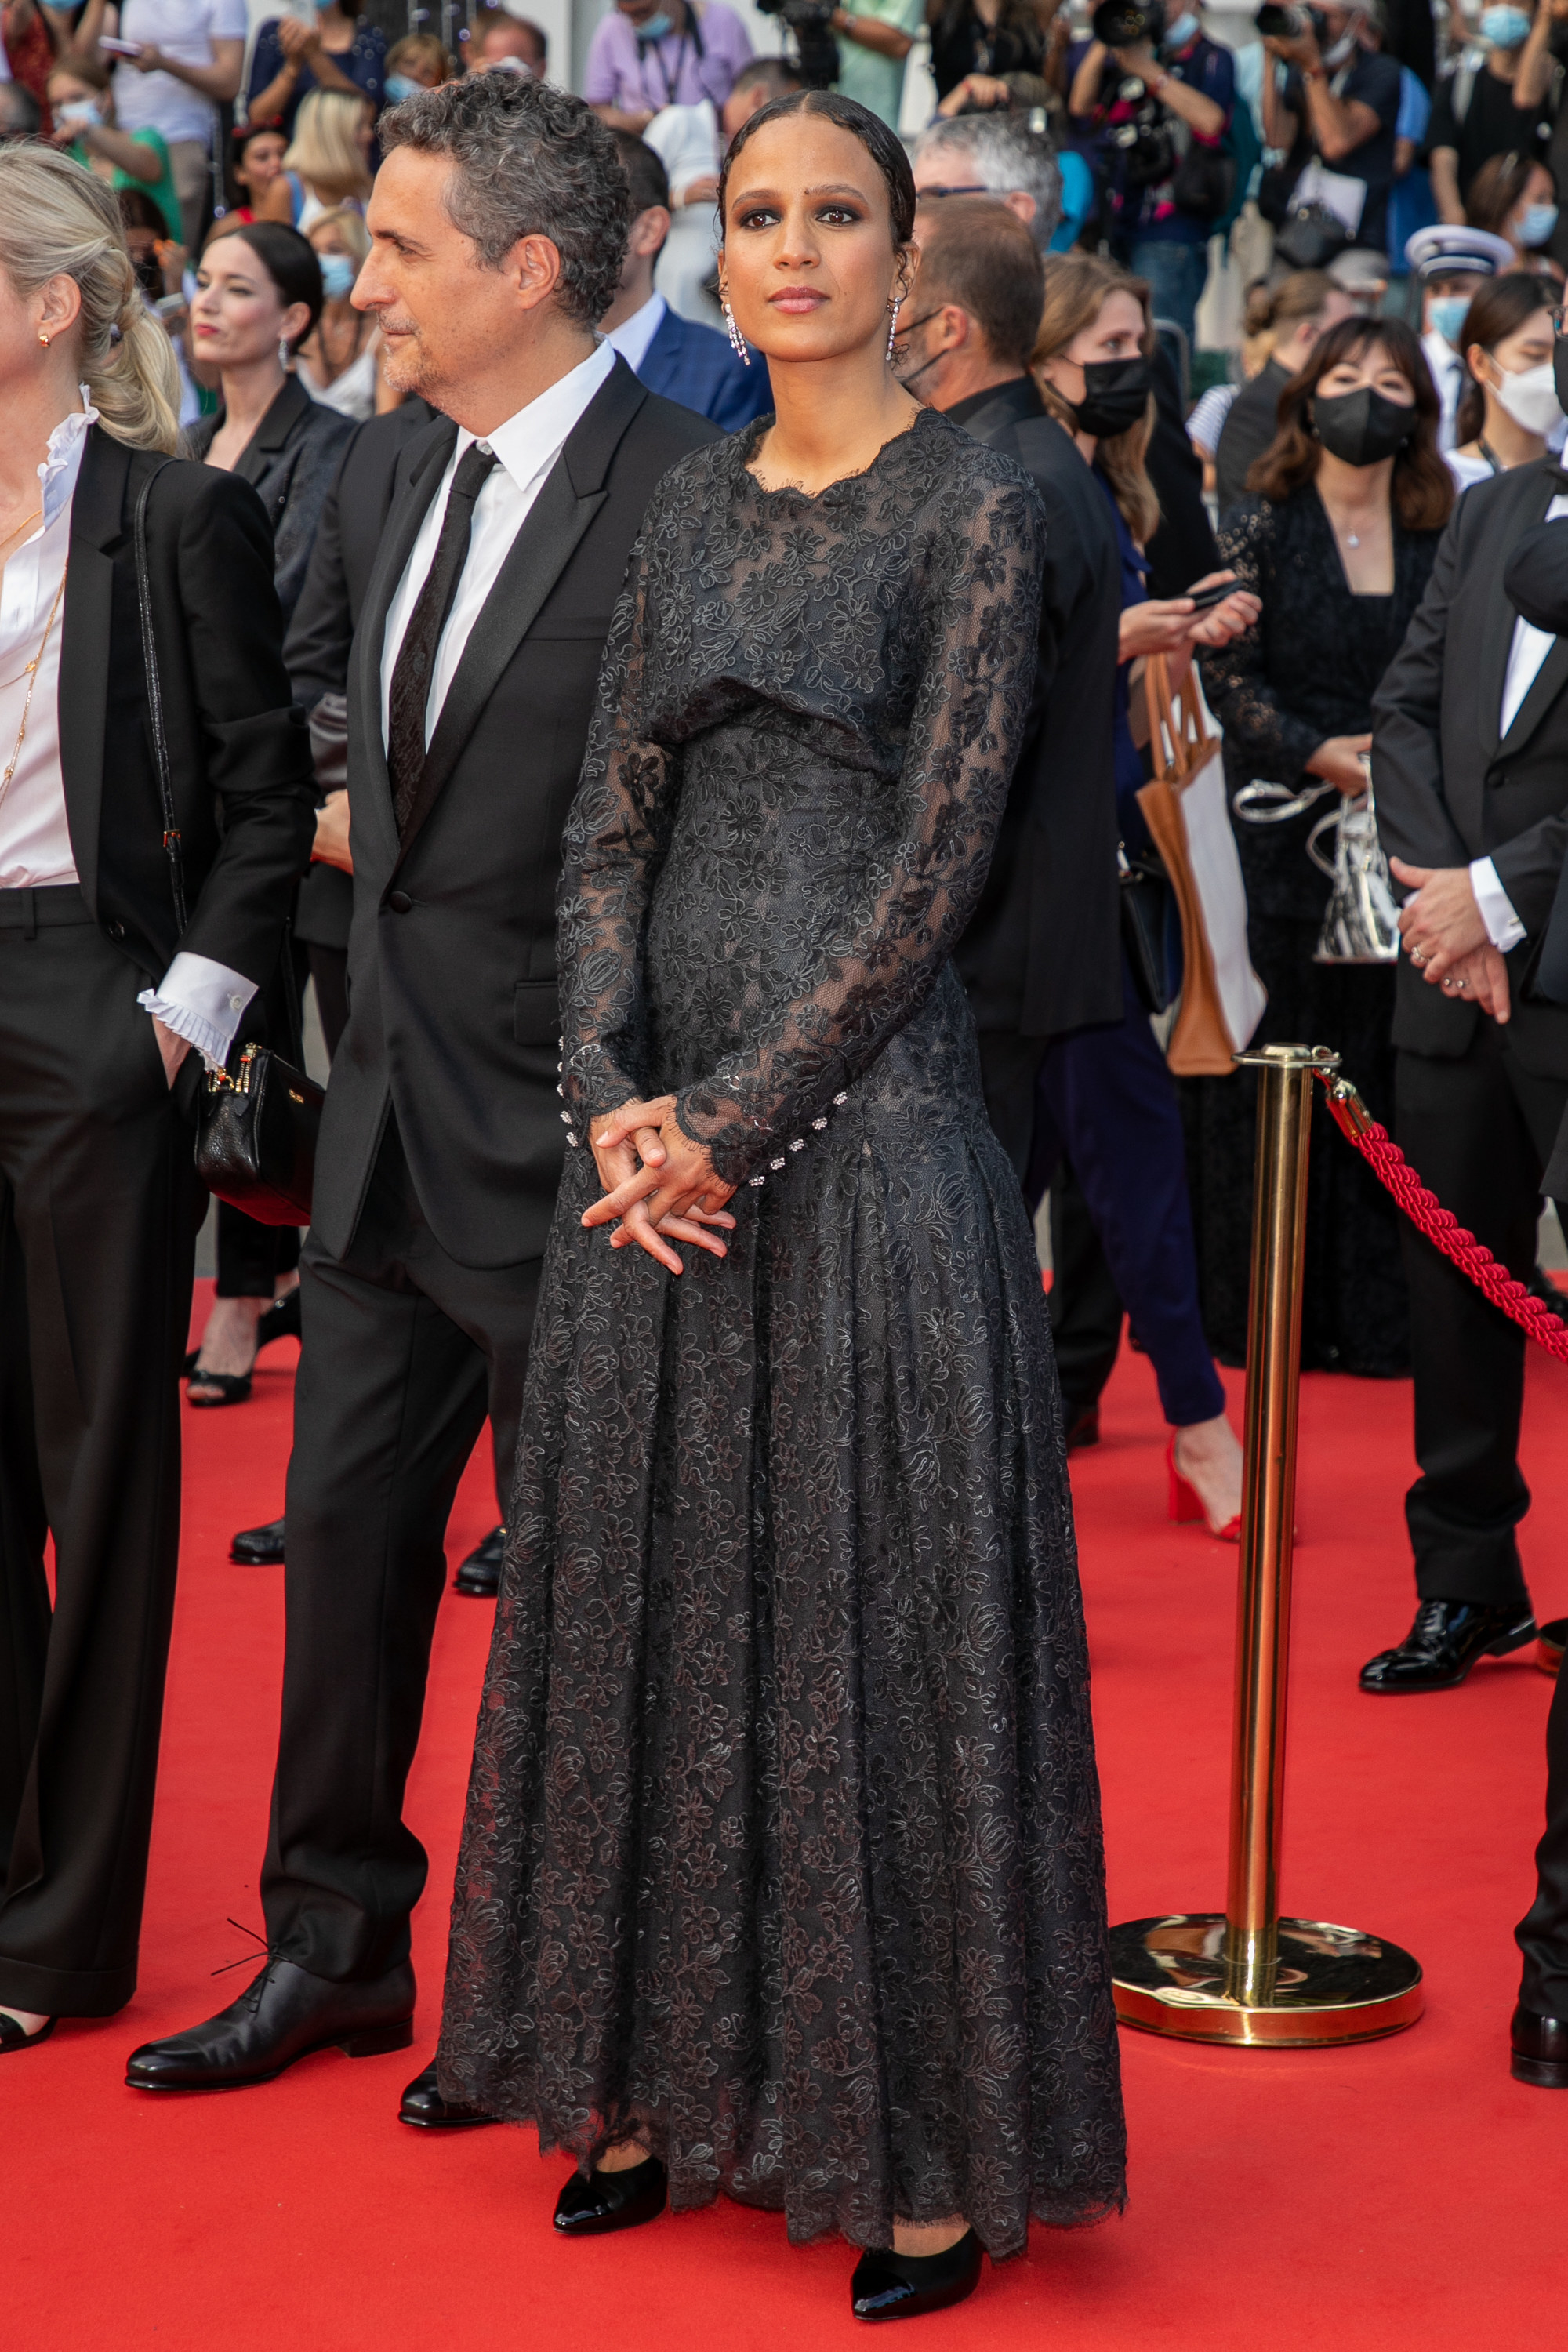 Mati Diop on the red carpet at the Cannes Film Festival